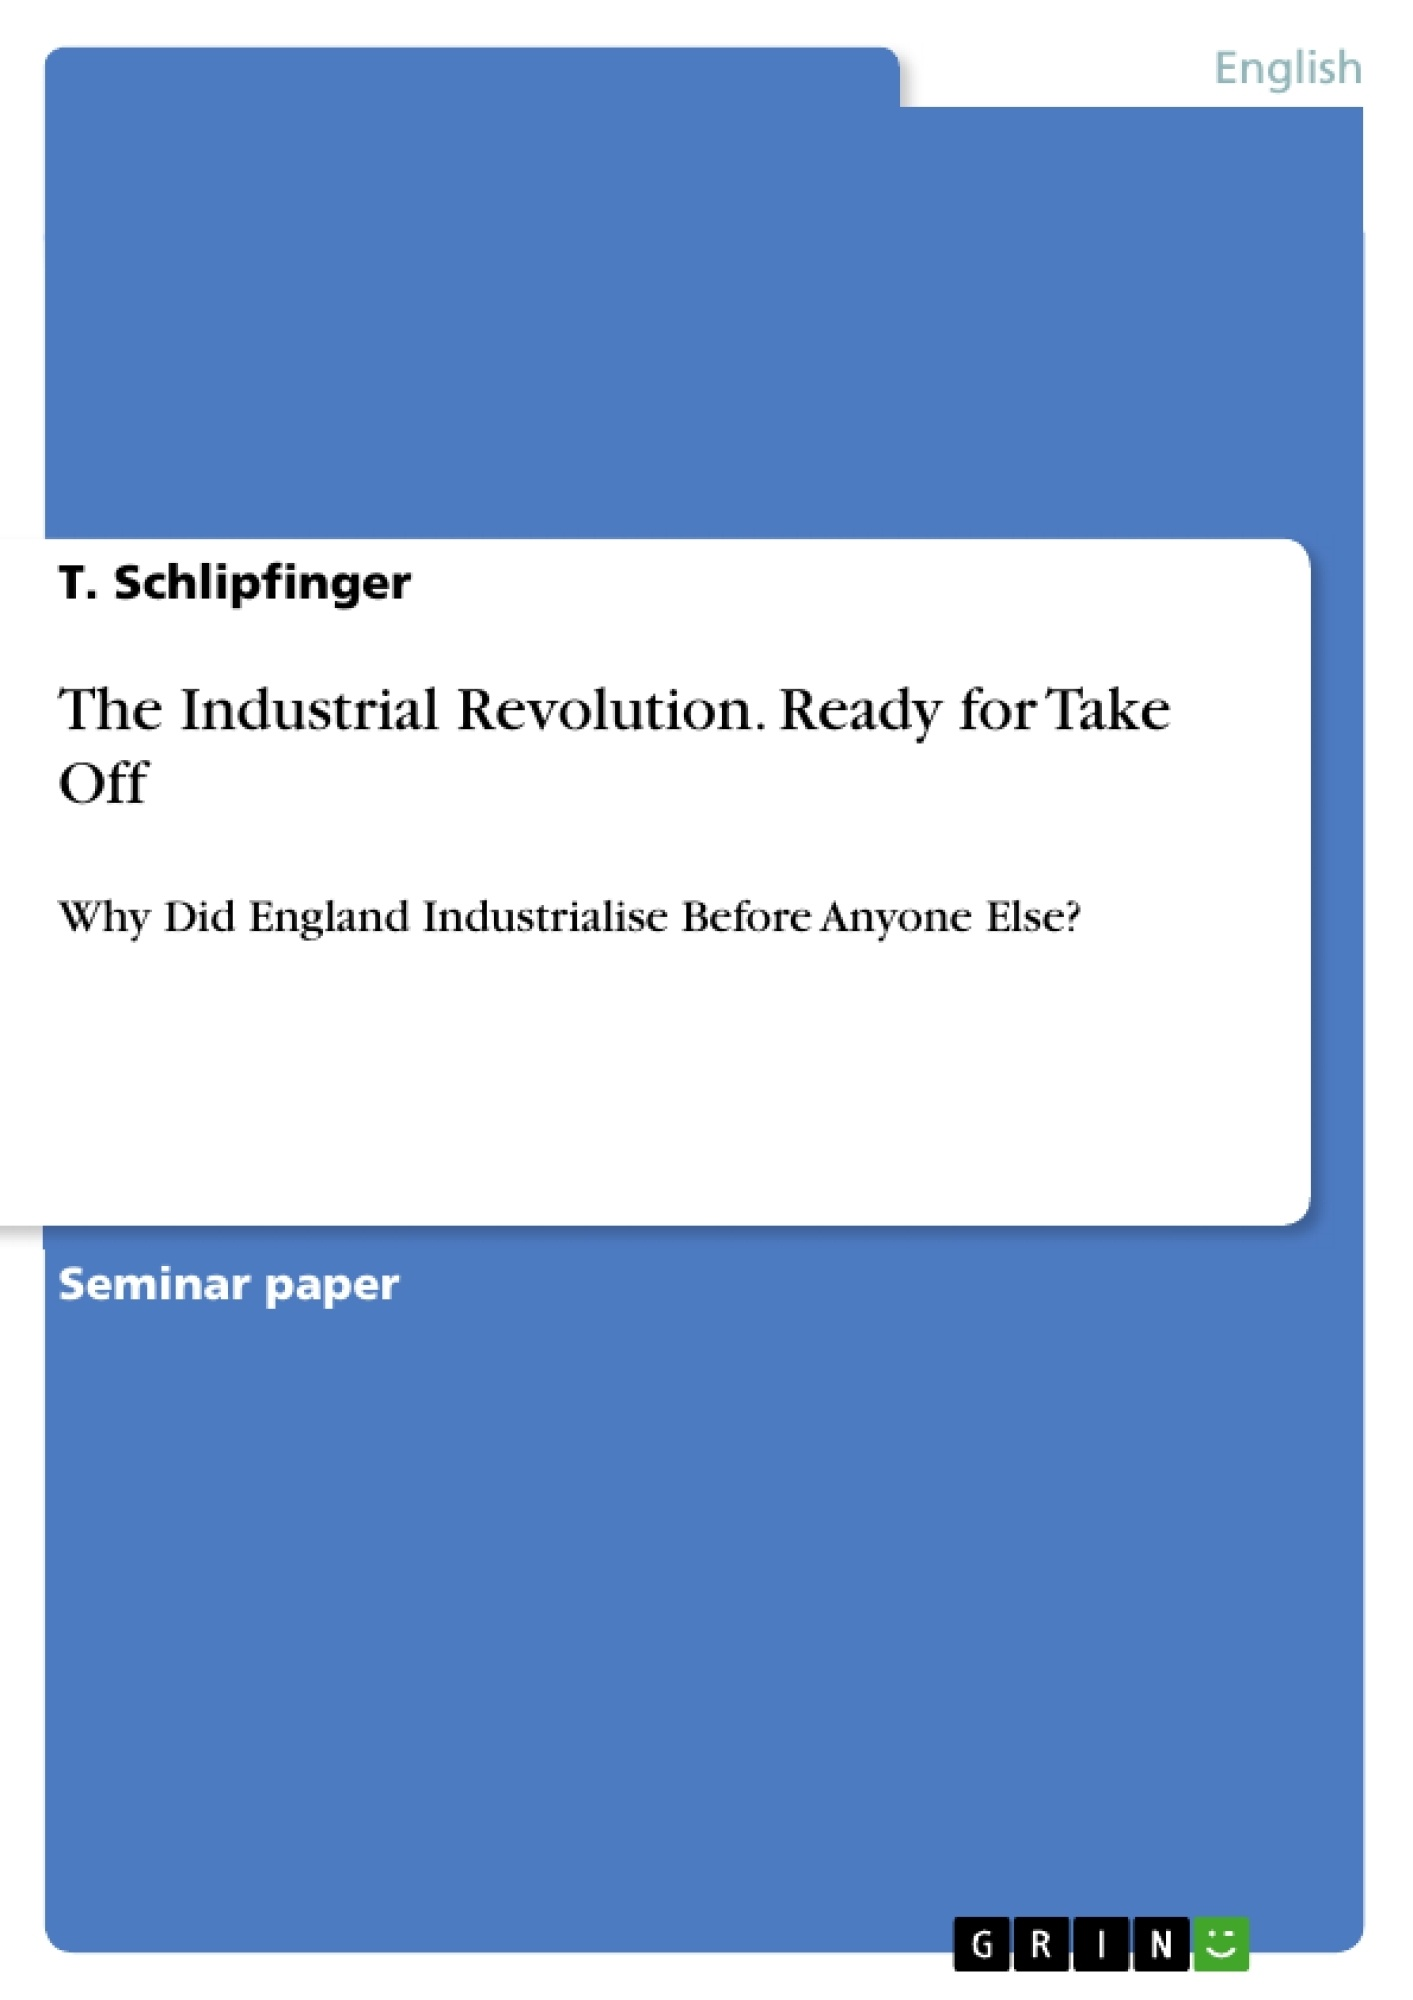 the industrial revolution ready for take off publish your upload your own papers earn money and win an iphone 7